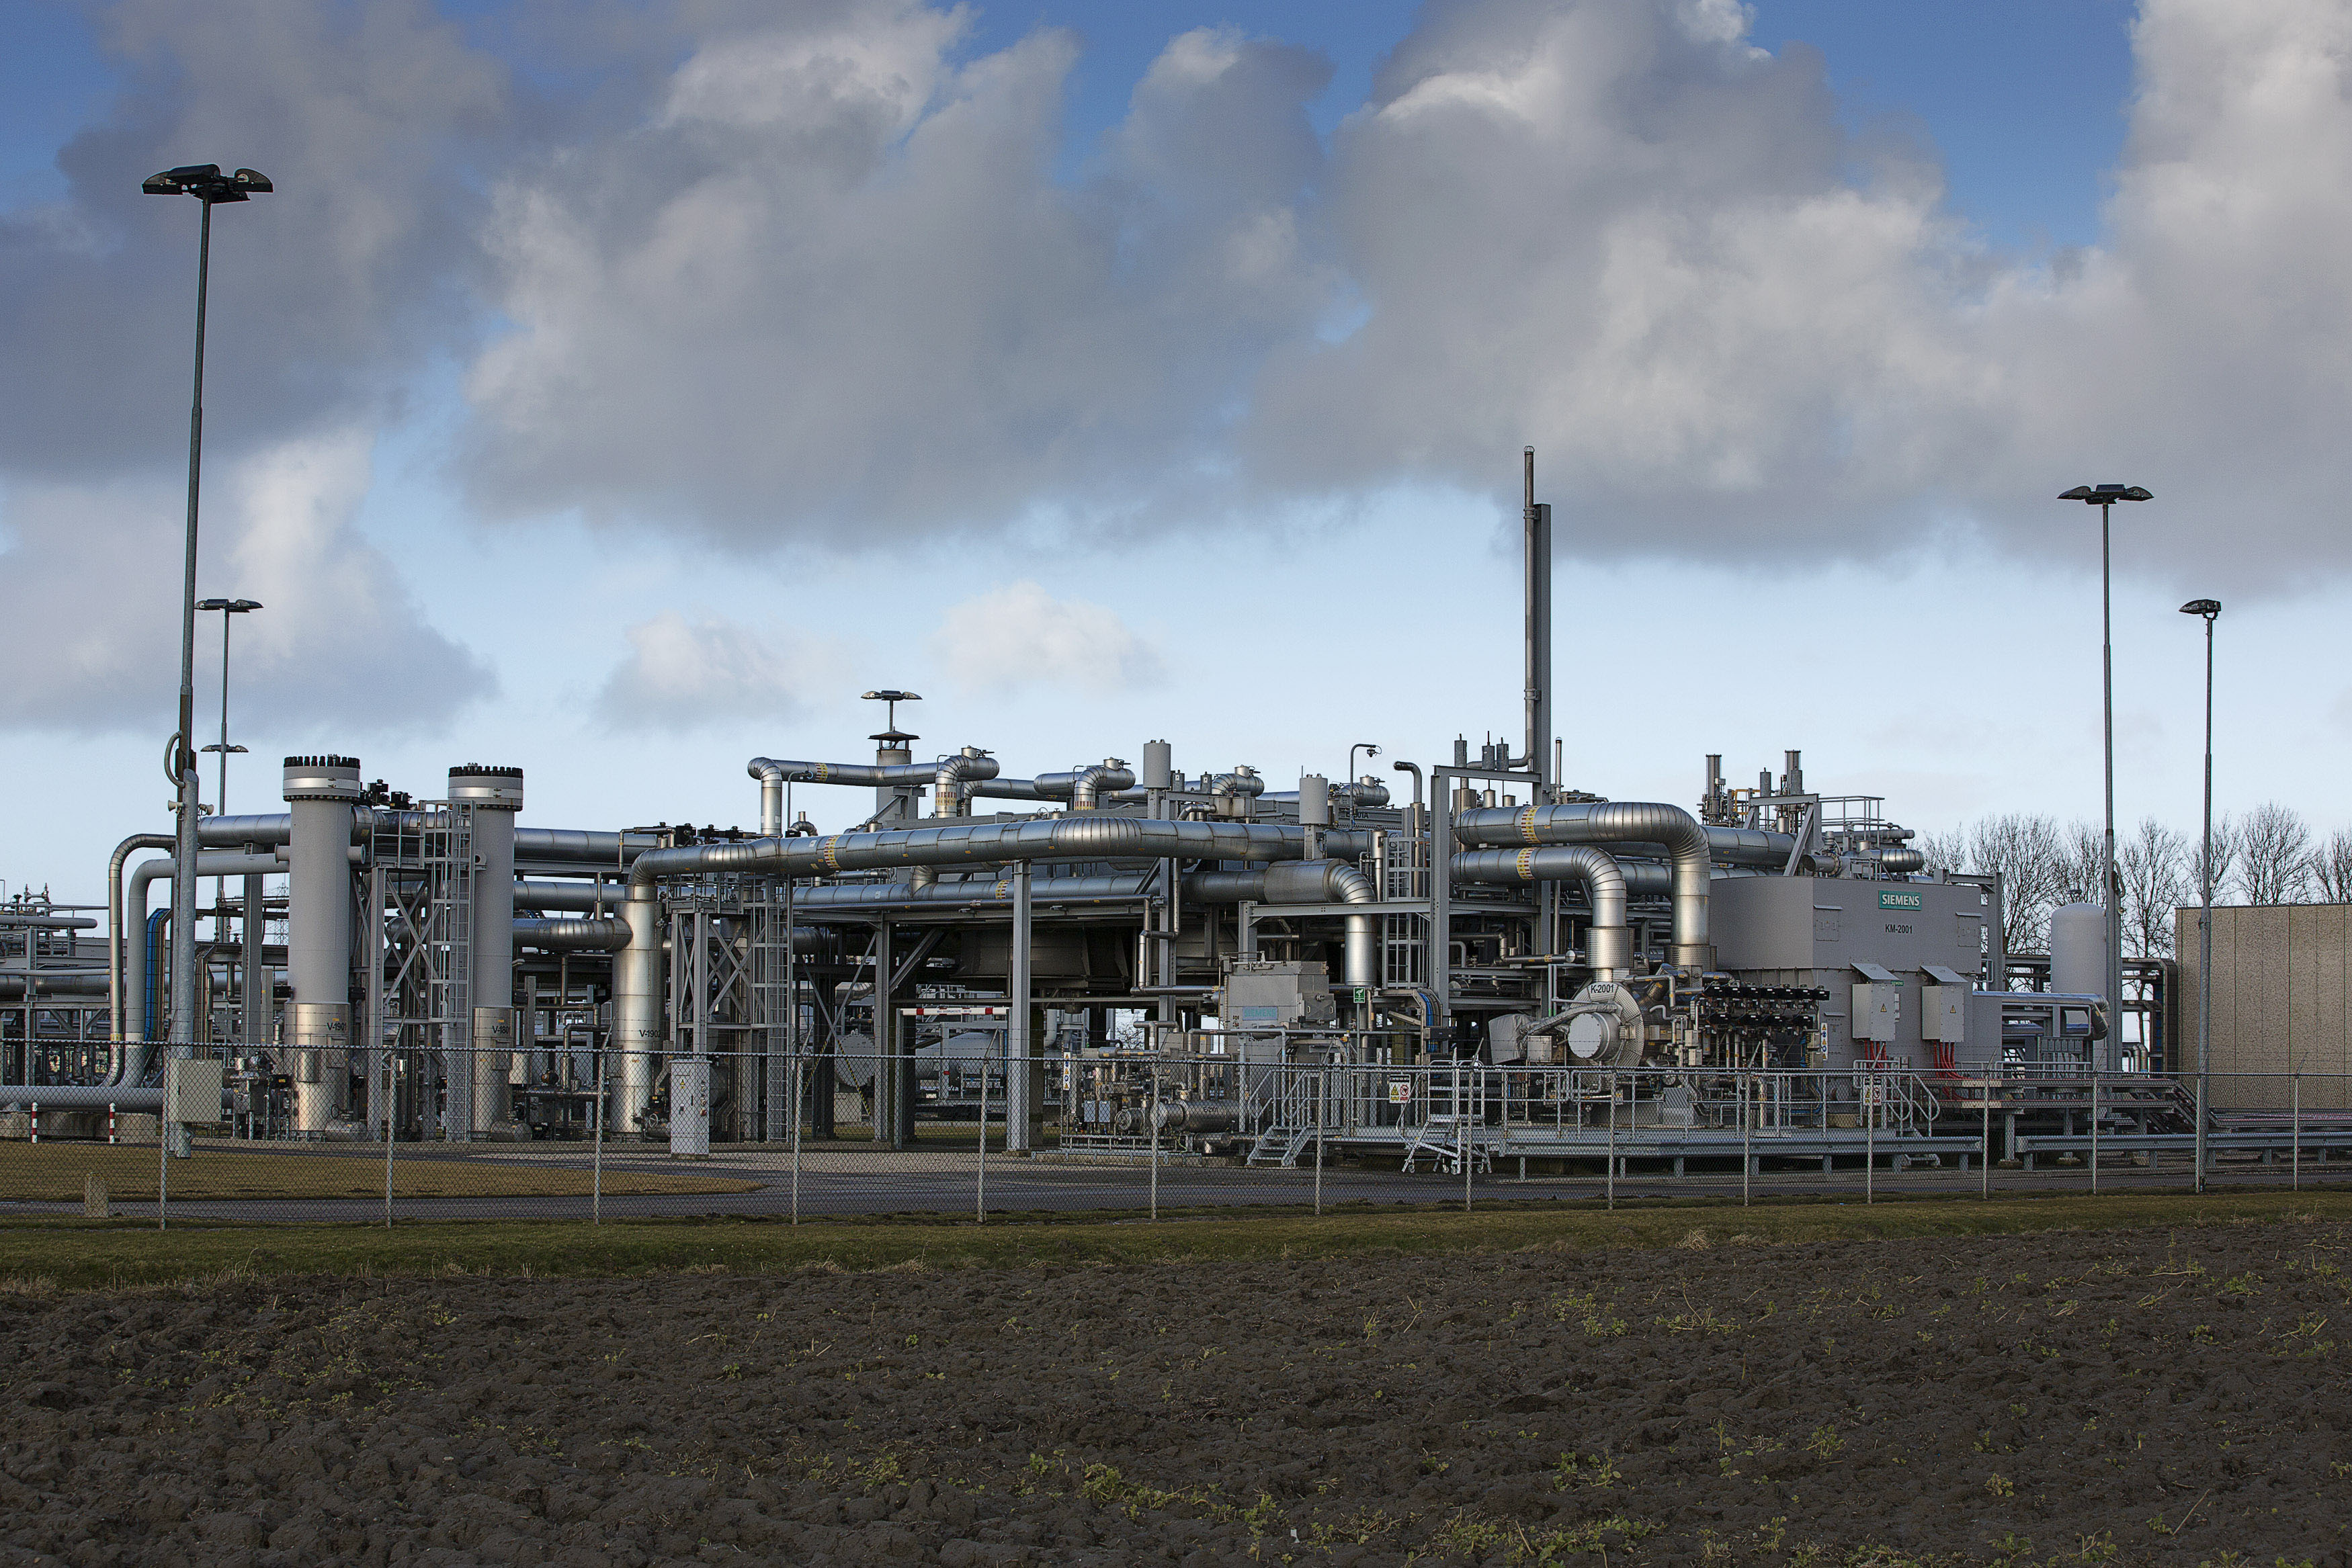 Natural Gas Production With Pressure Reduction